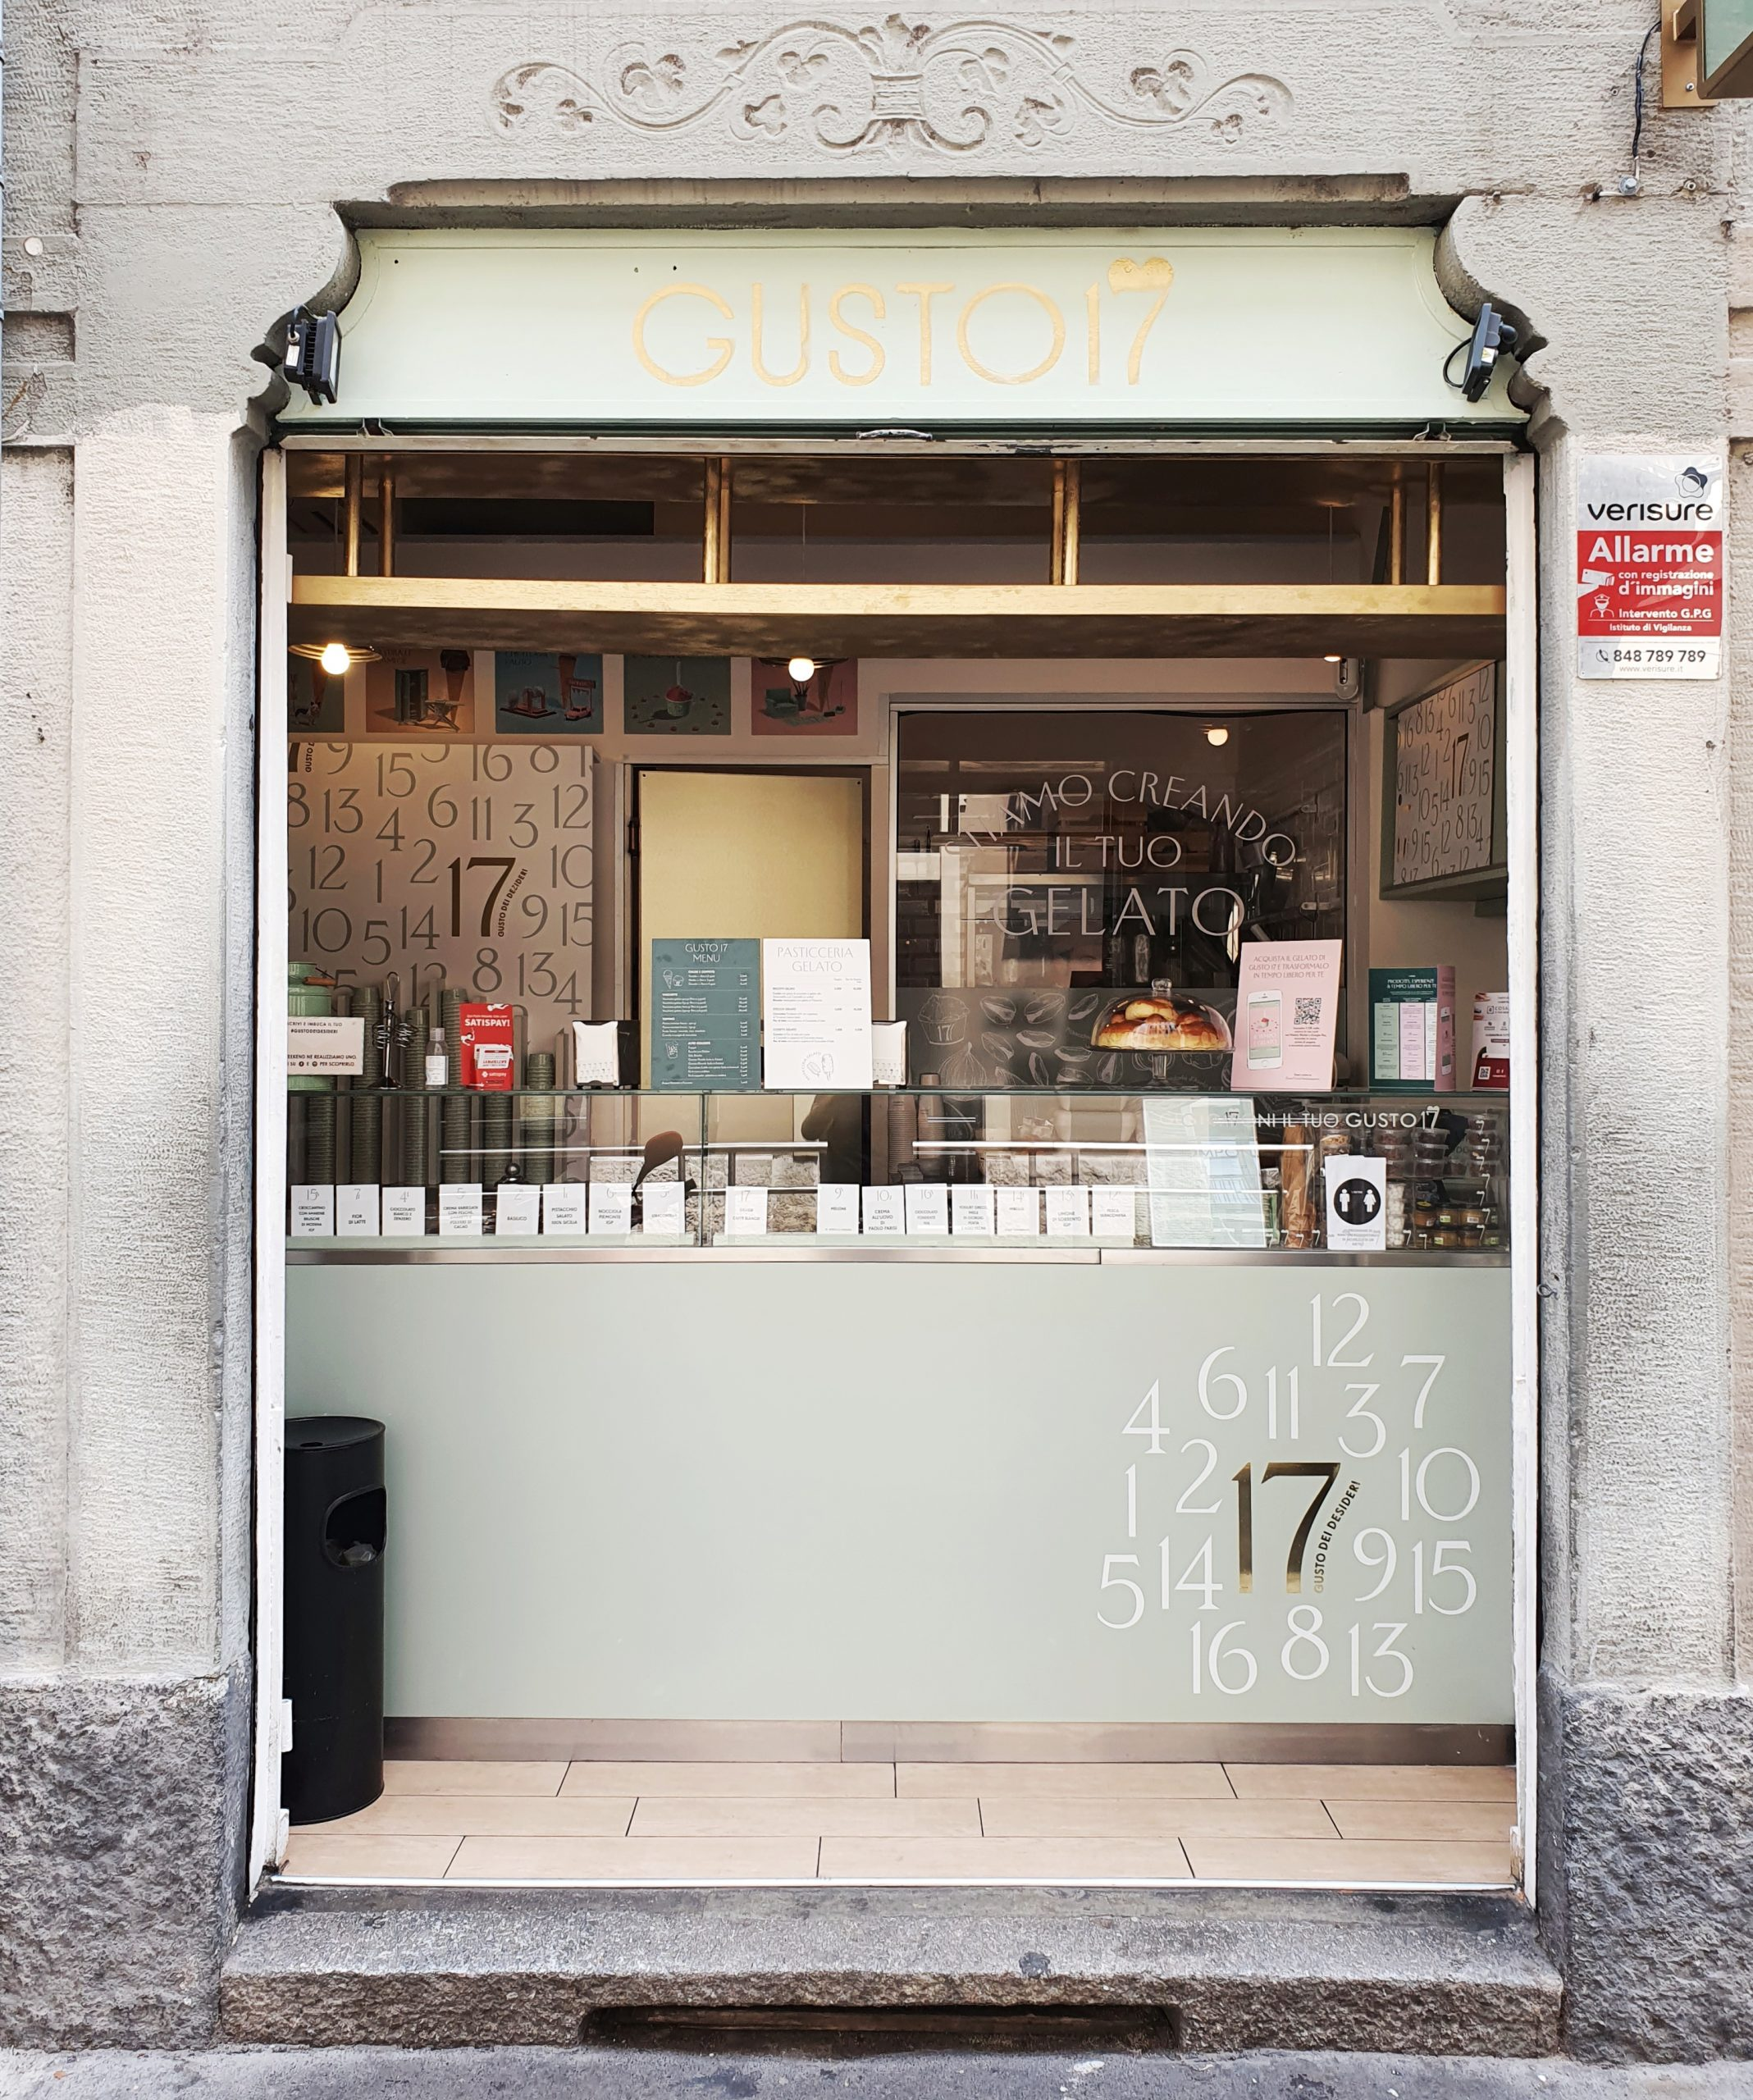 Gusto 17; gelaterie Milano